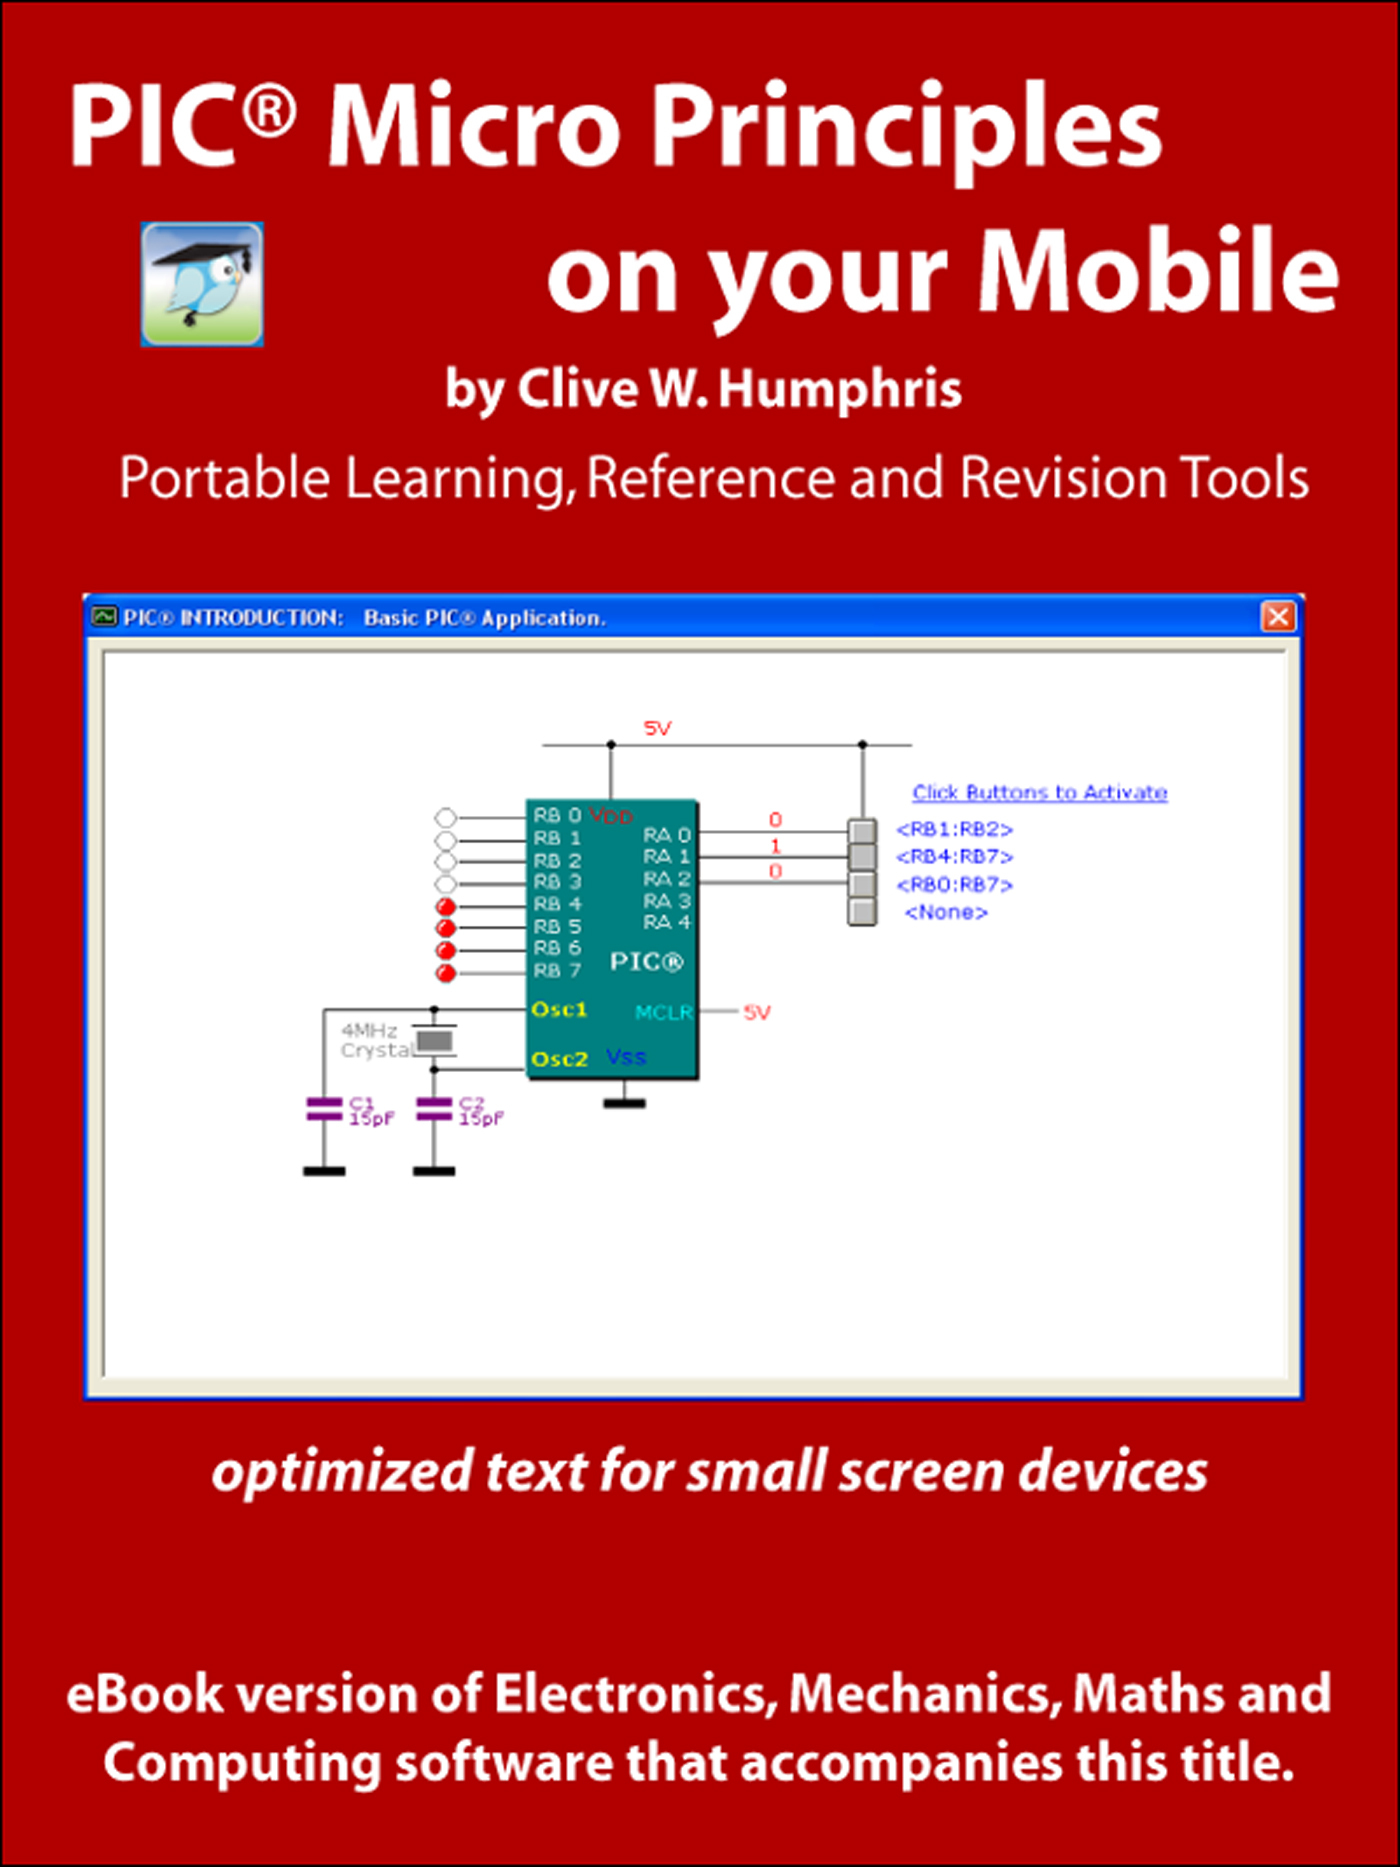 PIC® Micro Principles on your Mobile